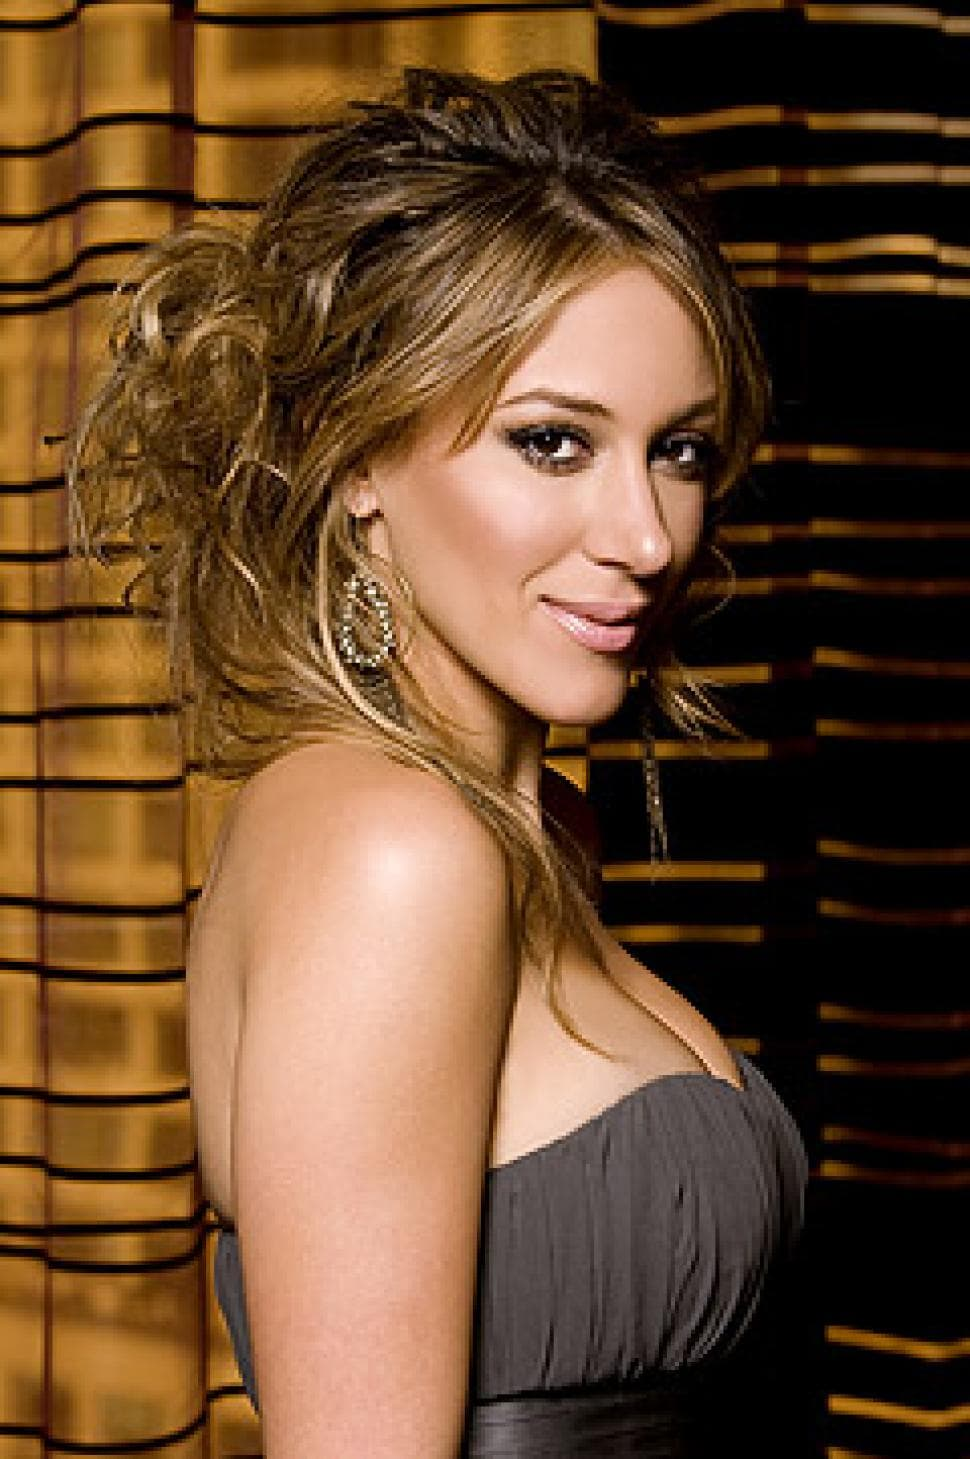 Haylie Duff For mobile